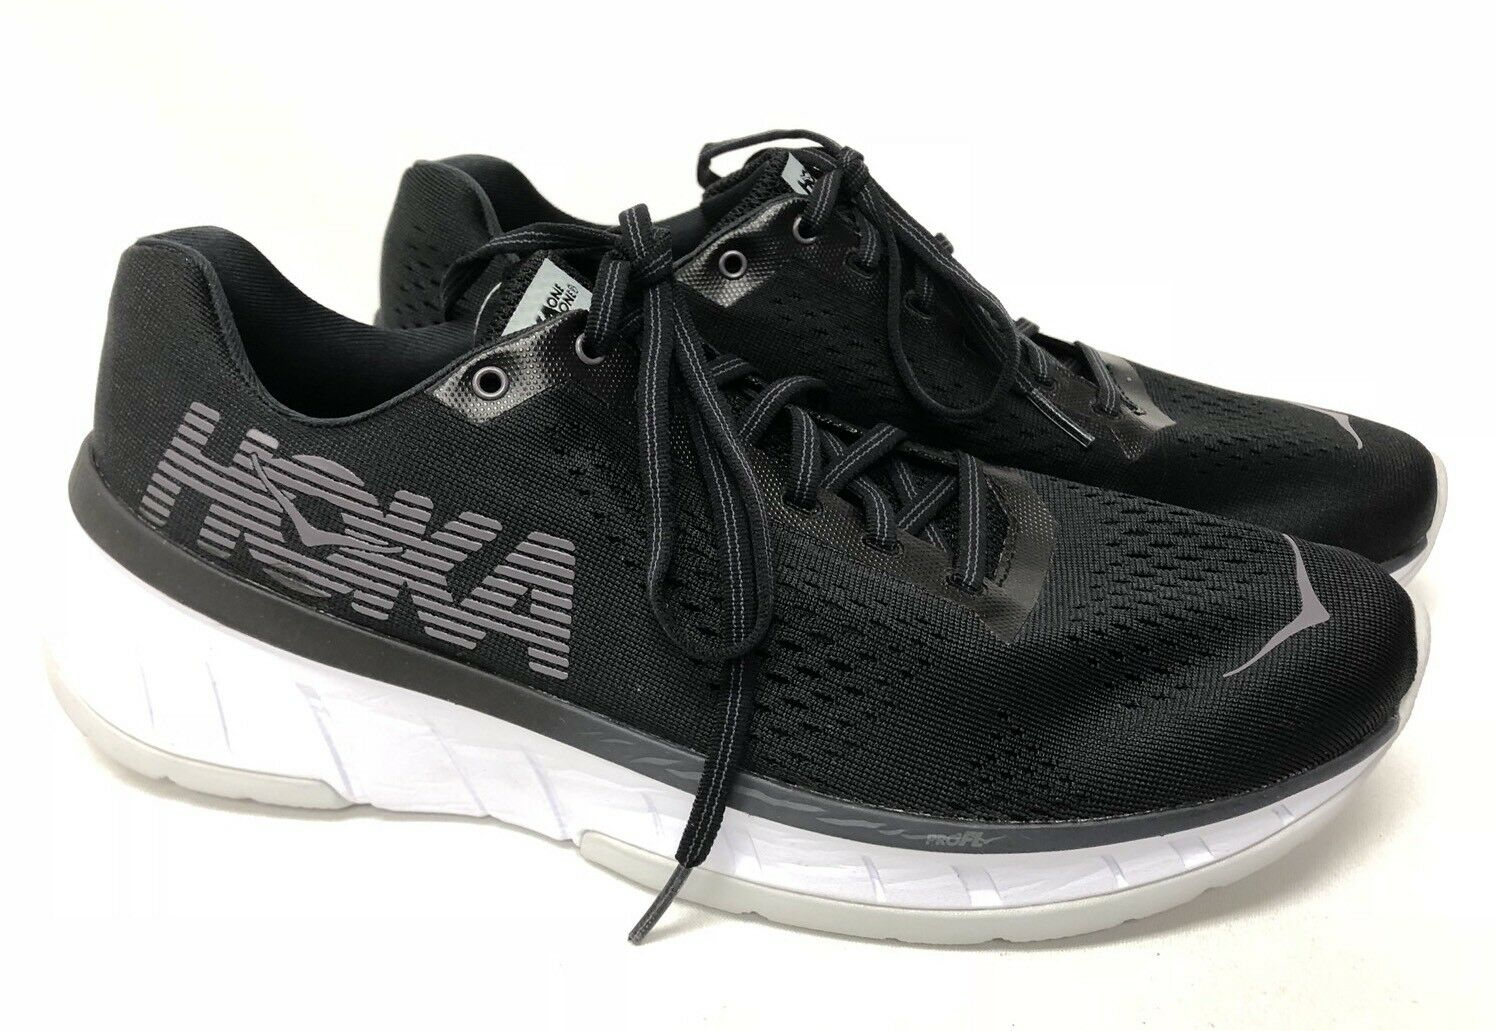 Hoka One One Cavu Black   White 1019282 Tennis Running shoes Lace Up Athletic